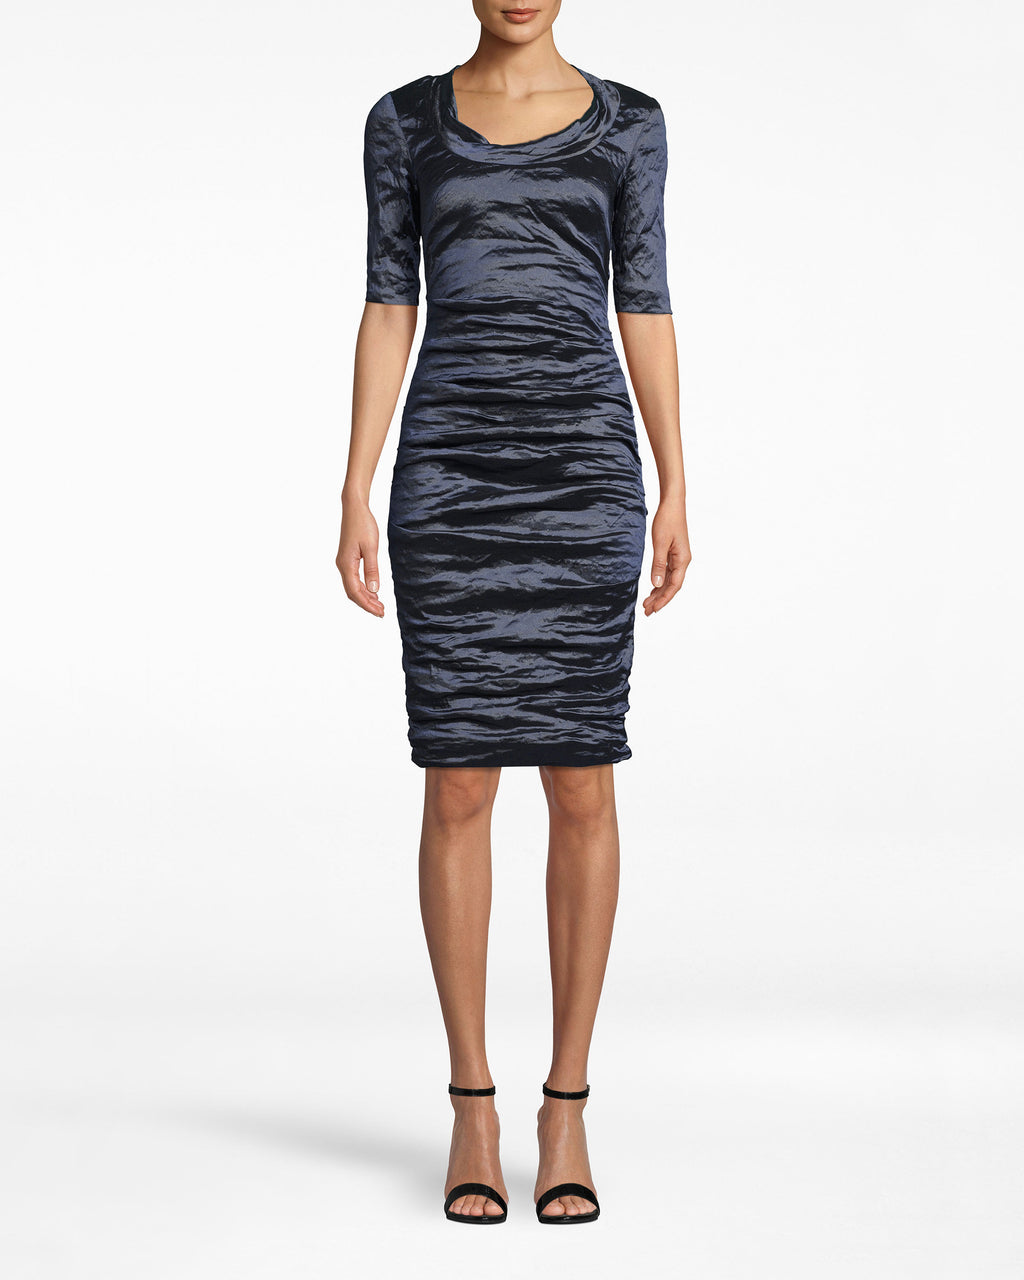 CC10200 - TECHNO METAL SCOOP NECK TUCK DRESS - dresses - short - Our Techno Metal elevates. On this dress, it adds a funky twist to the scoop neck, 3/4 sleeve form. Exposed back zipper for closure.